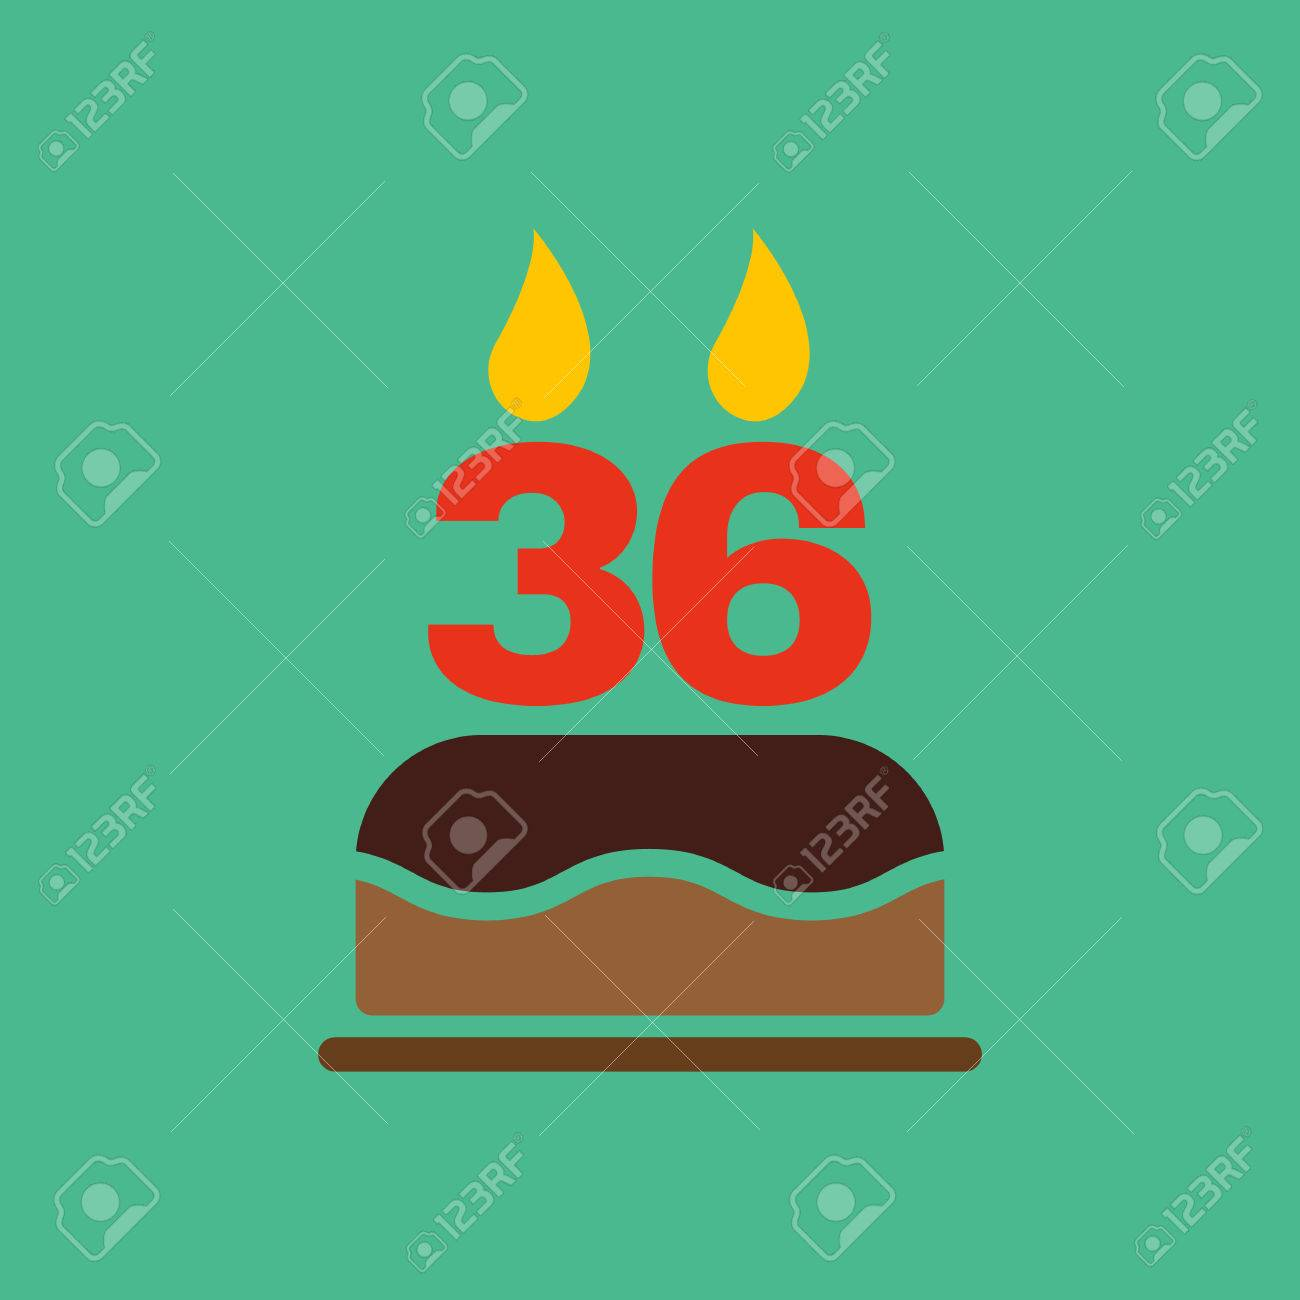 The Birthday Cake With Candles In The Form Of Number 36 Icon